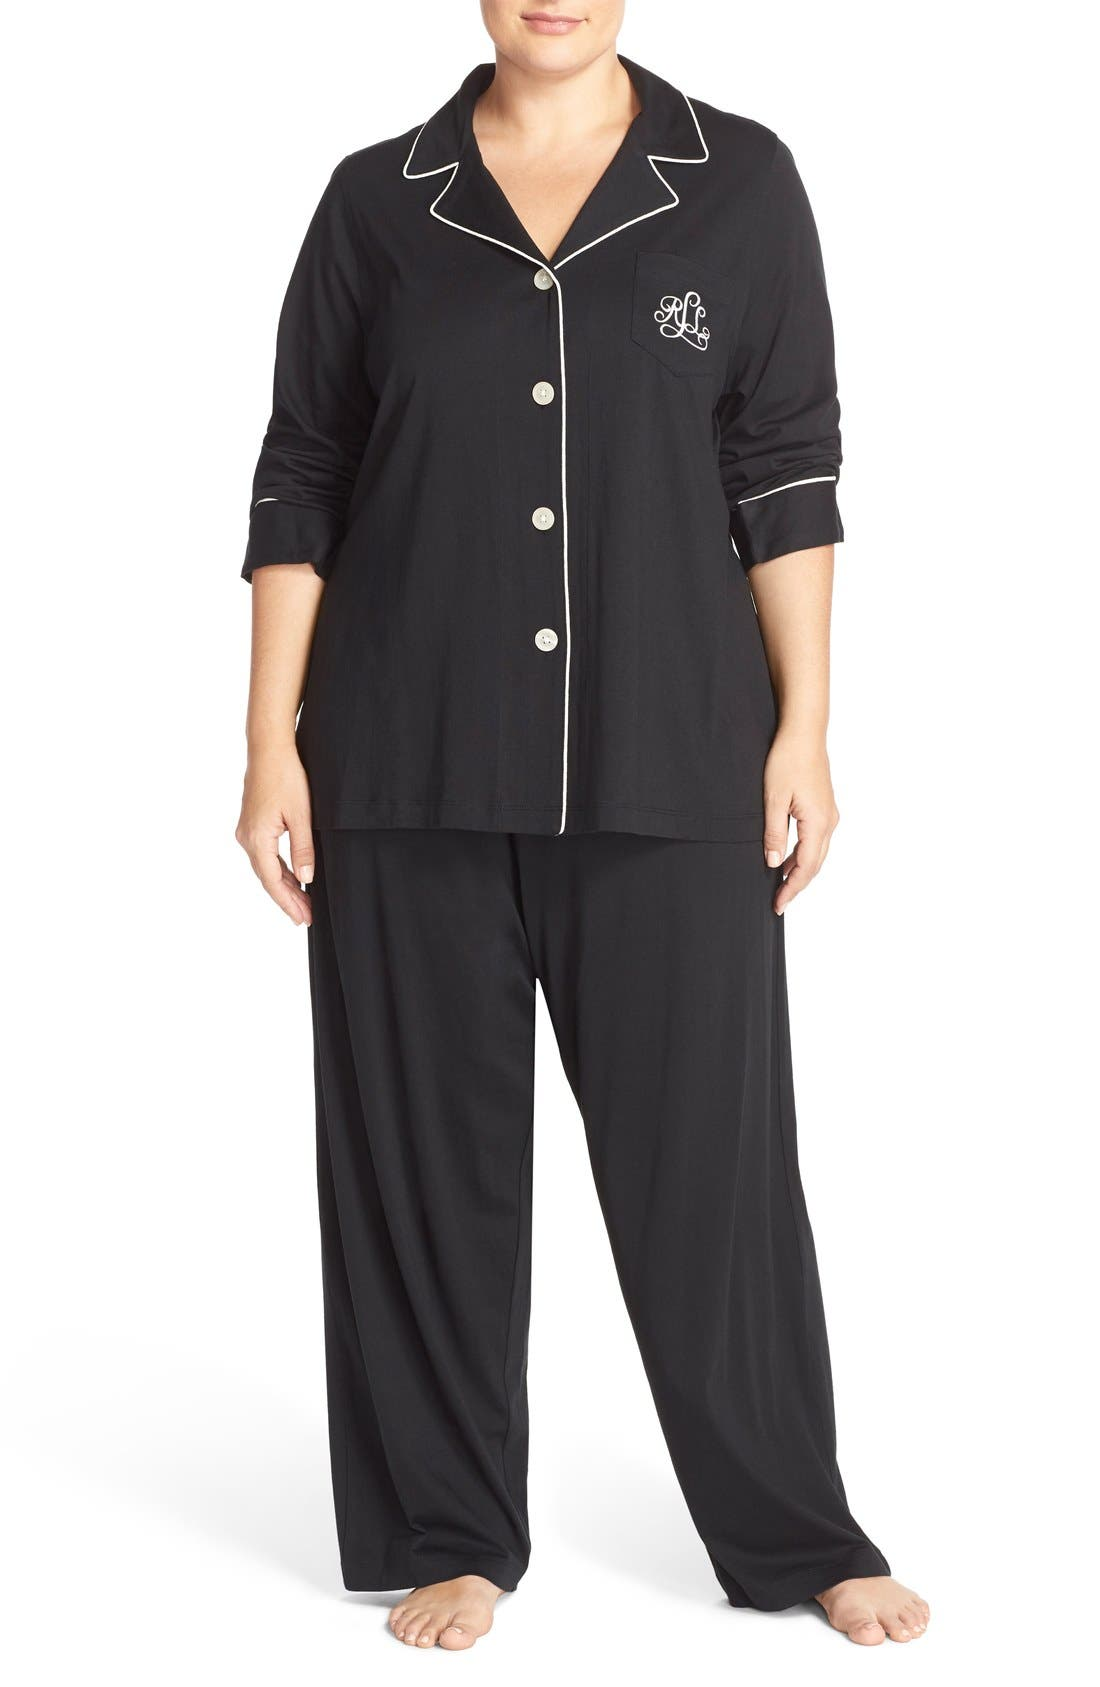 Knit Pajamas,                         Main,                         color, Black